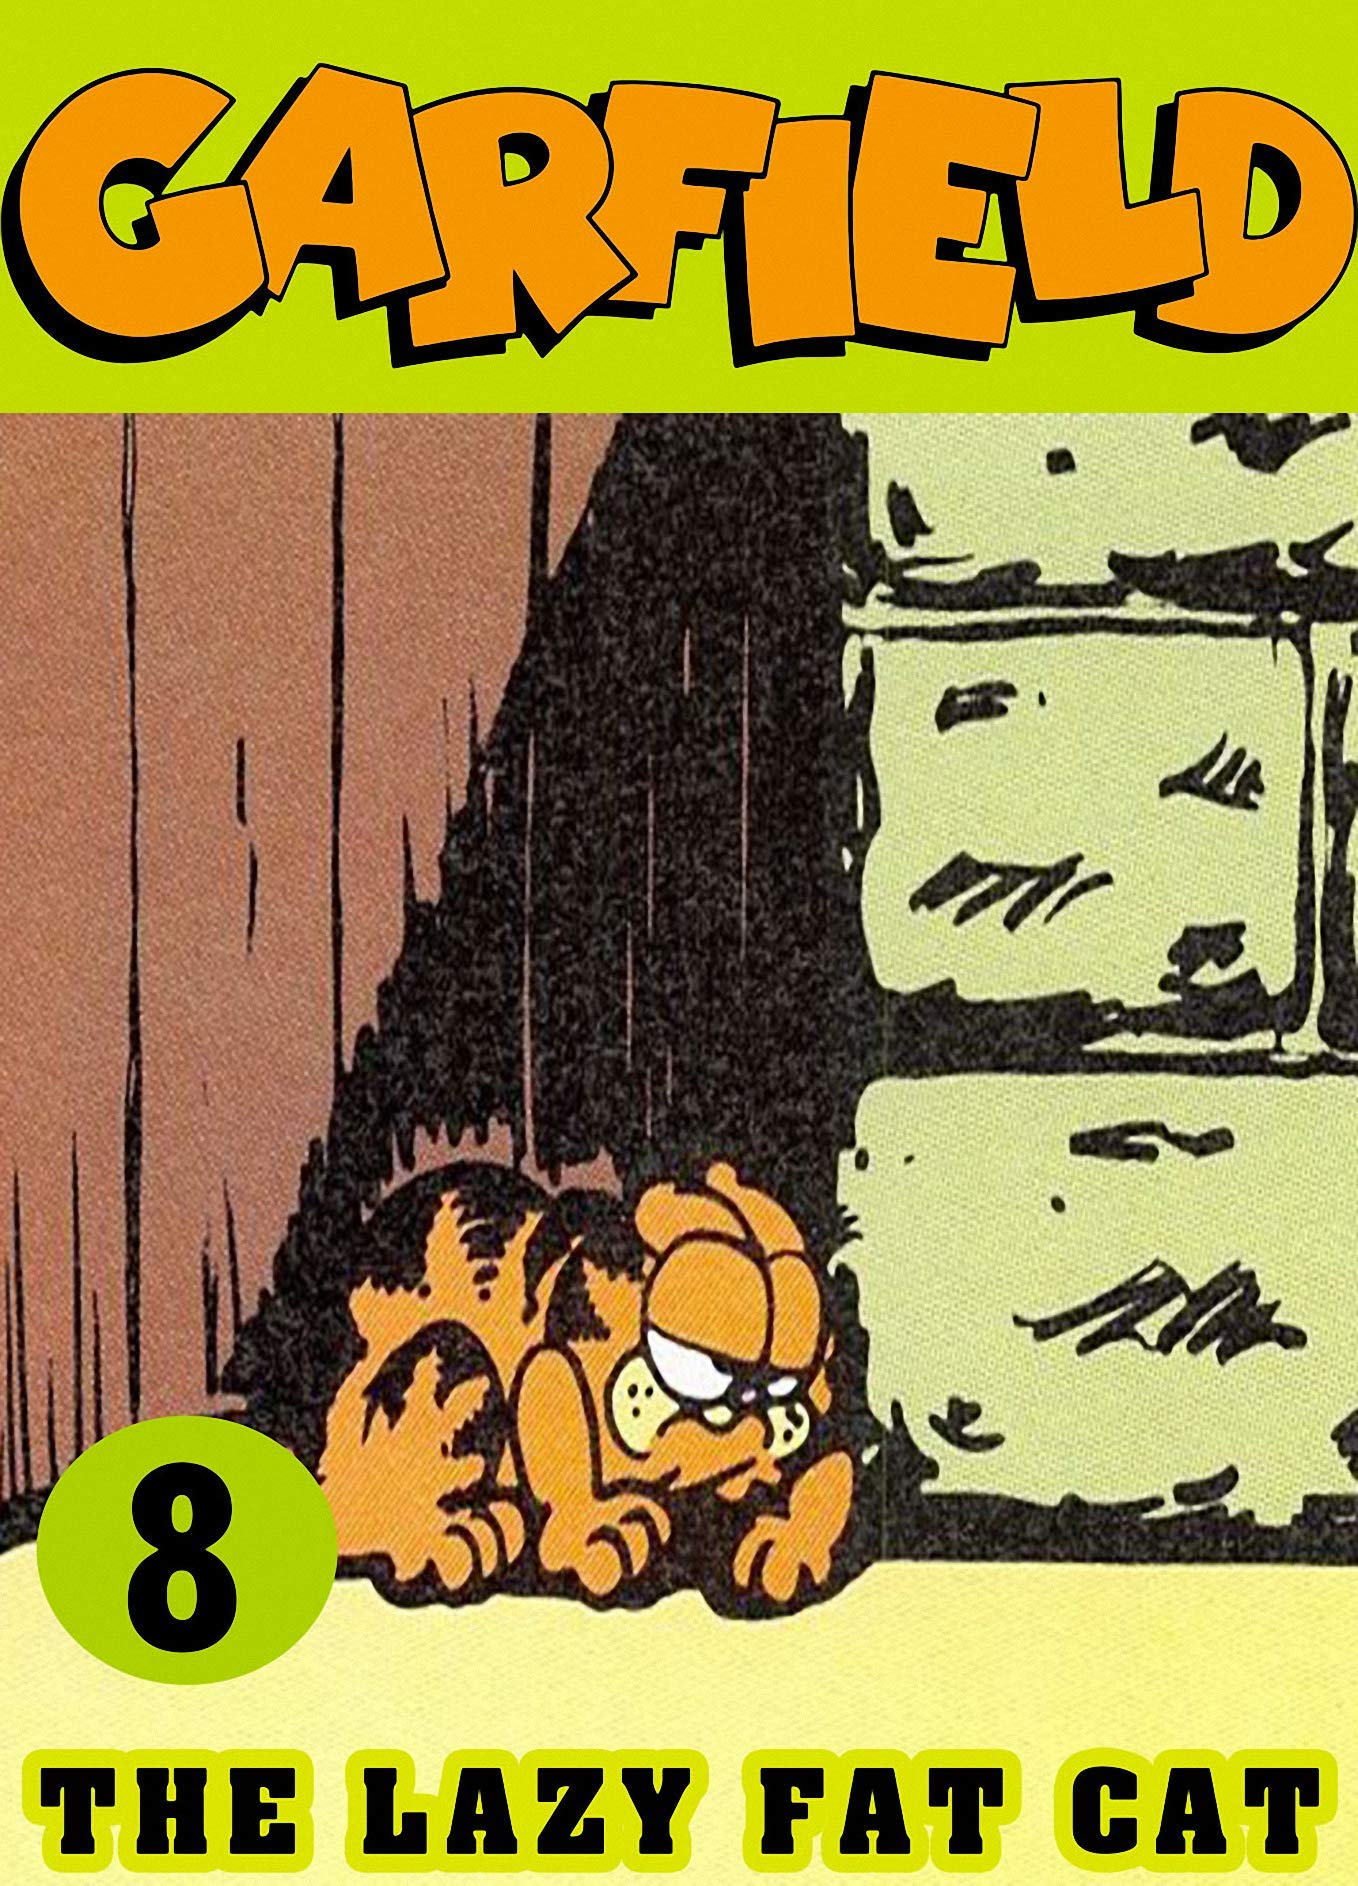 Lazy Cat: Collection Book 8 -Funny Fat Cat - Cartoon Garfield Comic Strips